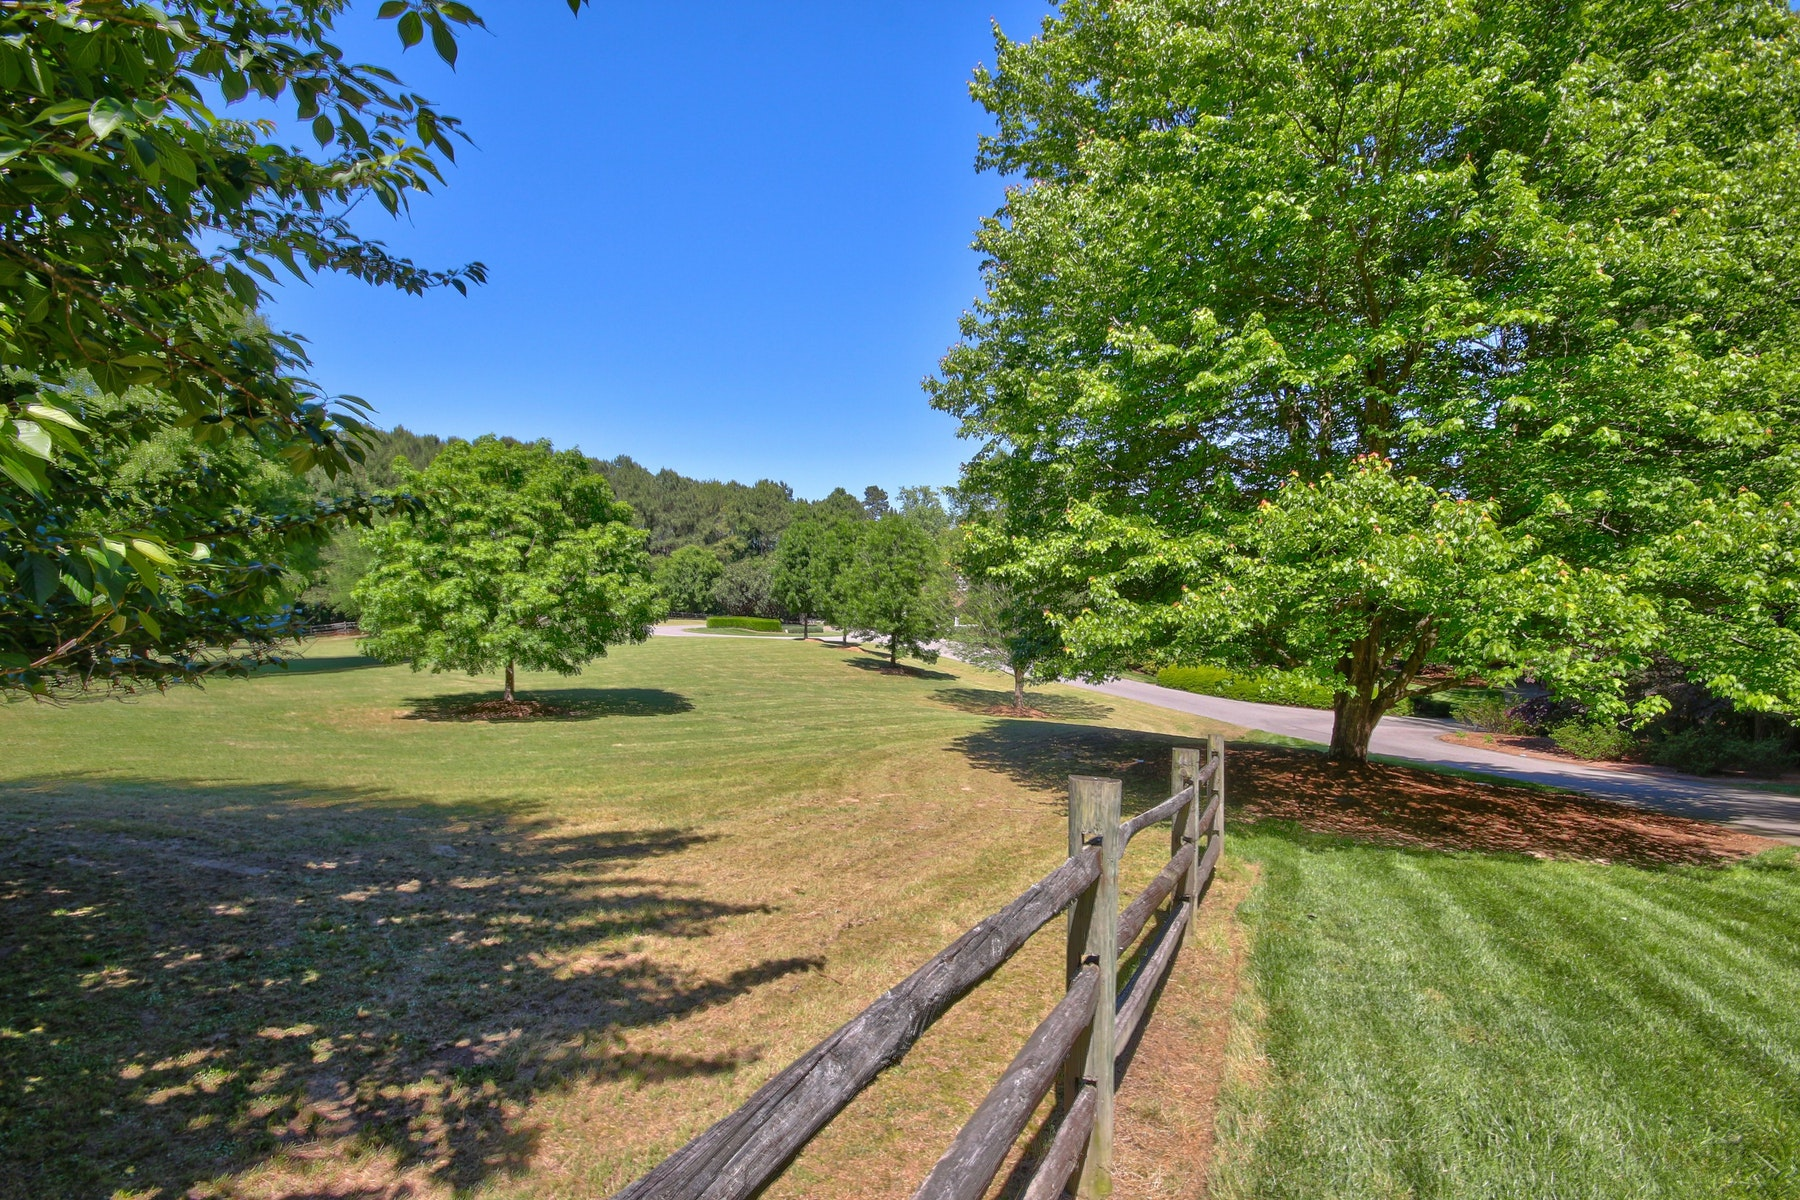 Additional photo for property listing at Old Lystra Road / Chapel Hill 1310 Old Lystra Road Chapel Hill, North Carolina 27517 United States